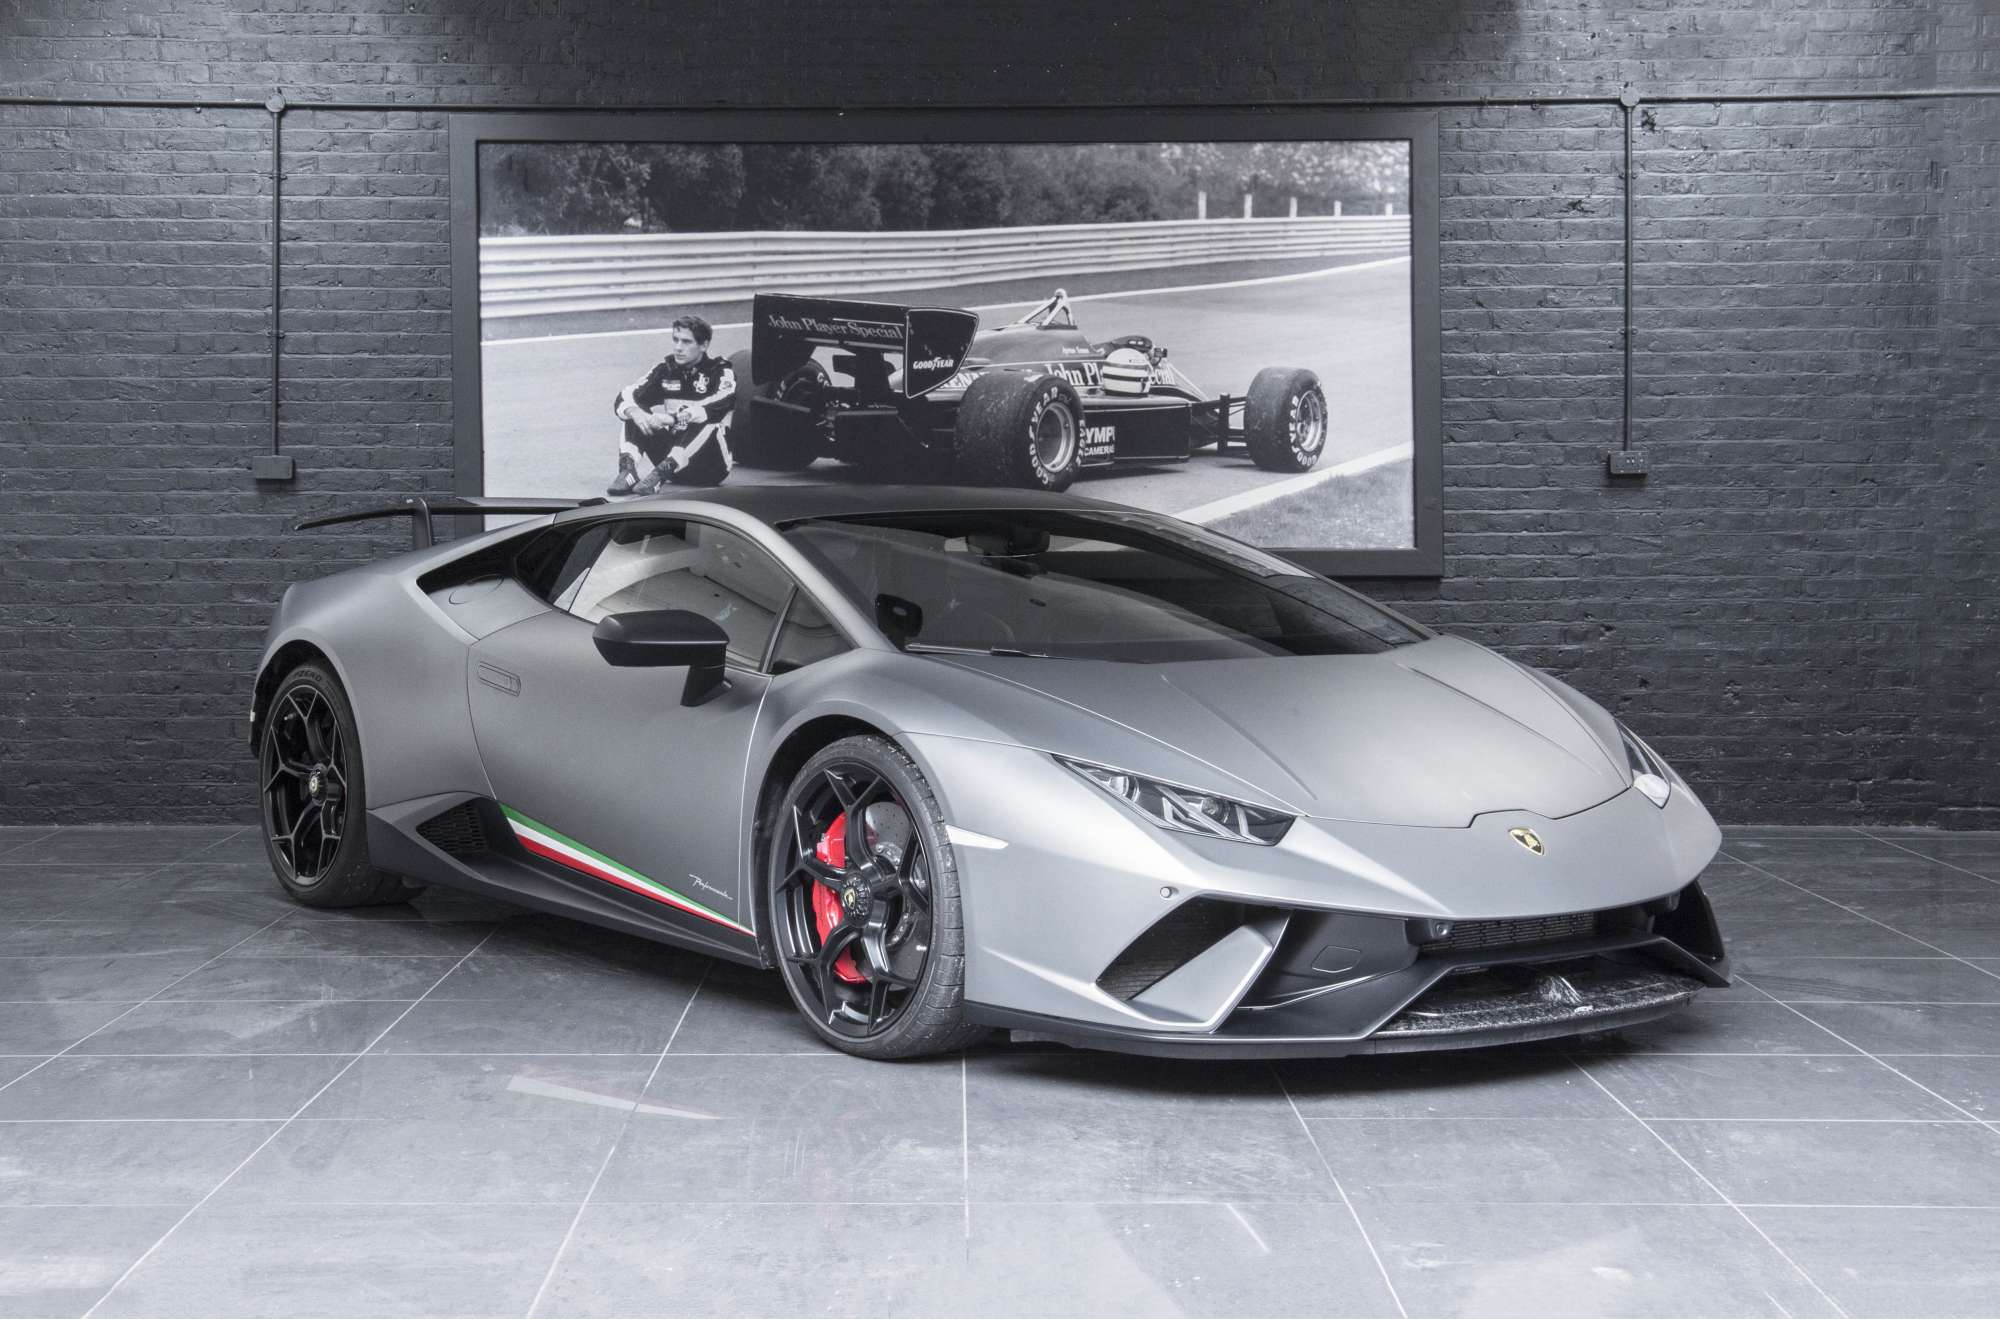 Lamborghini Car 2017 Model >> Lamborghini Huracan Performante - Pegasus Auto House